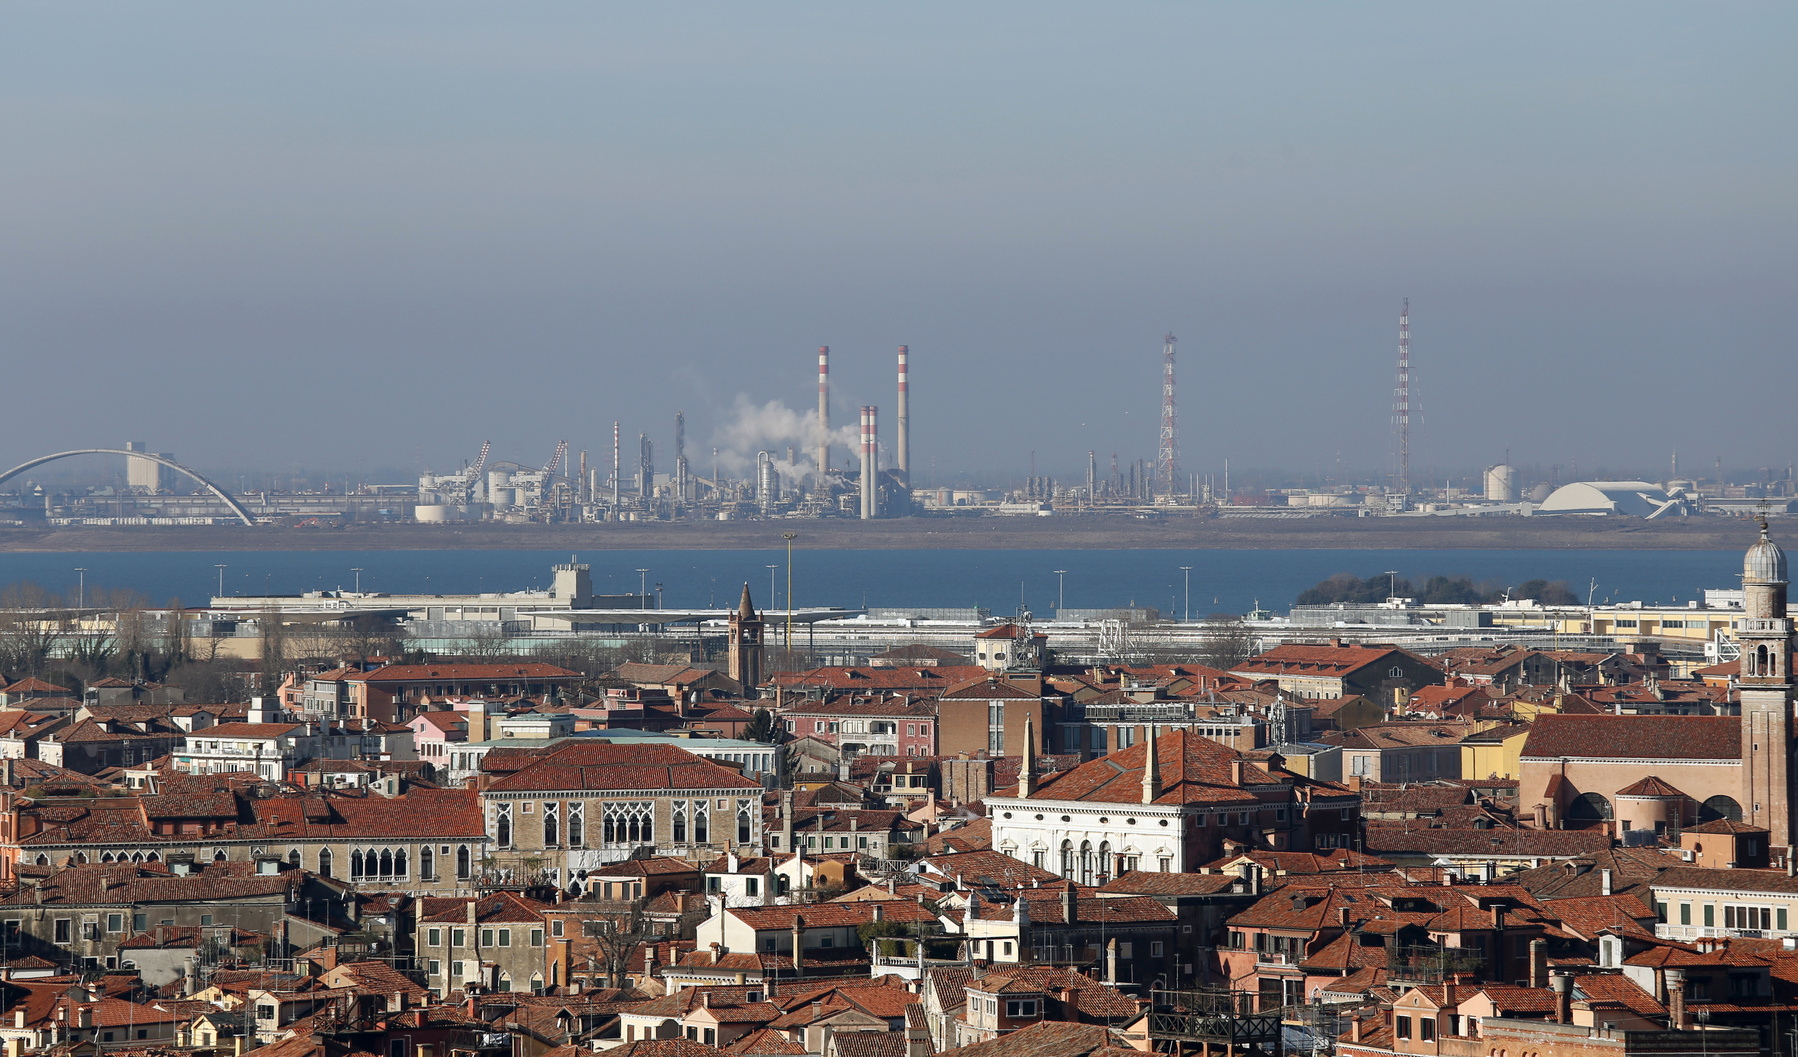 smokestacks and factories polluting with smoke